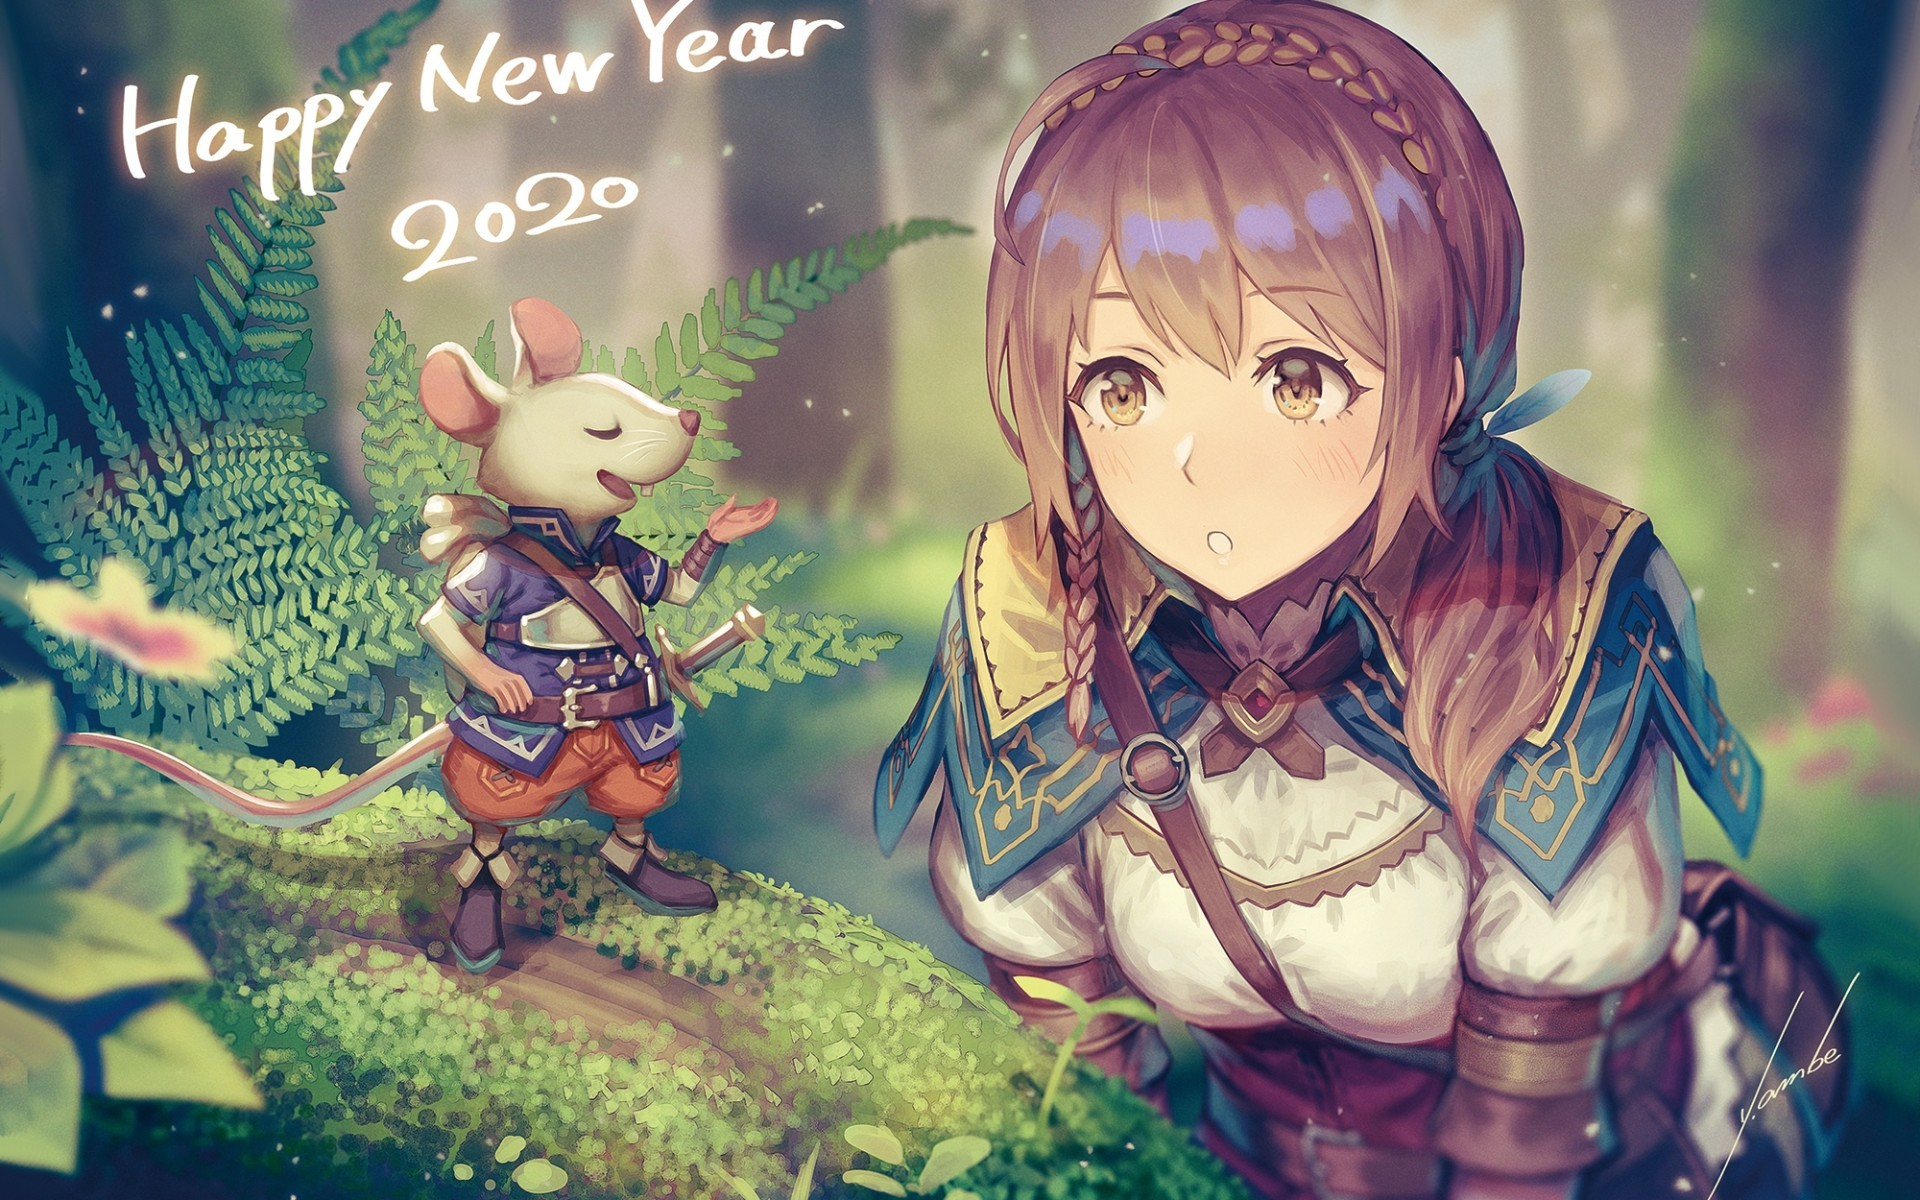 Download 1920x1200 Anime Girl Adventurer Forest Light Armor 1920x1200